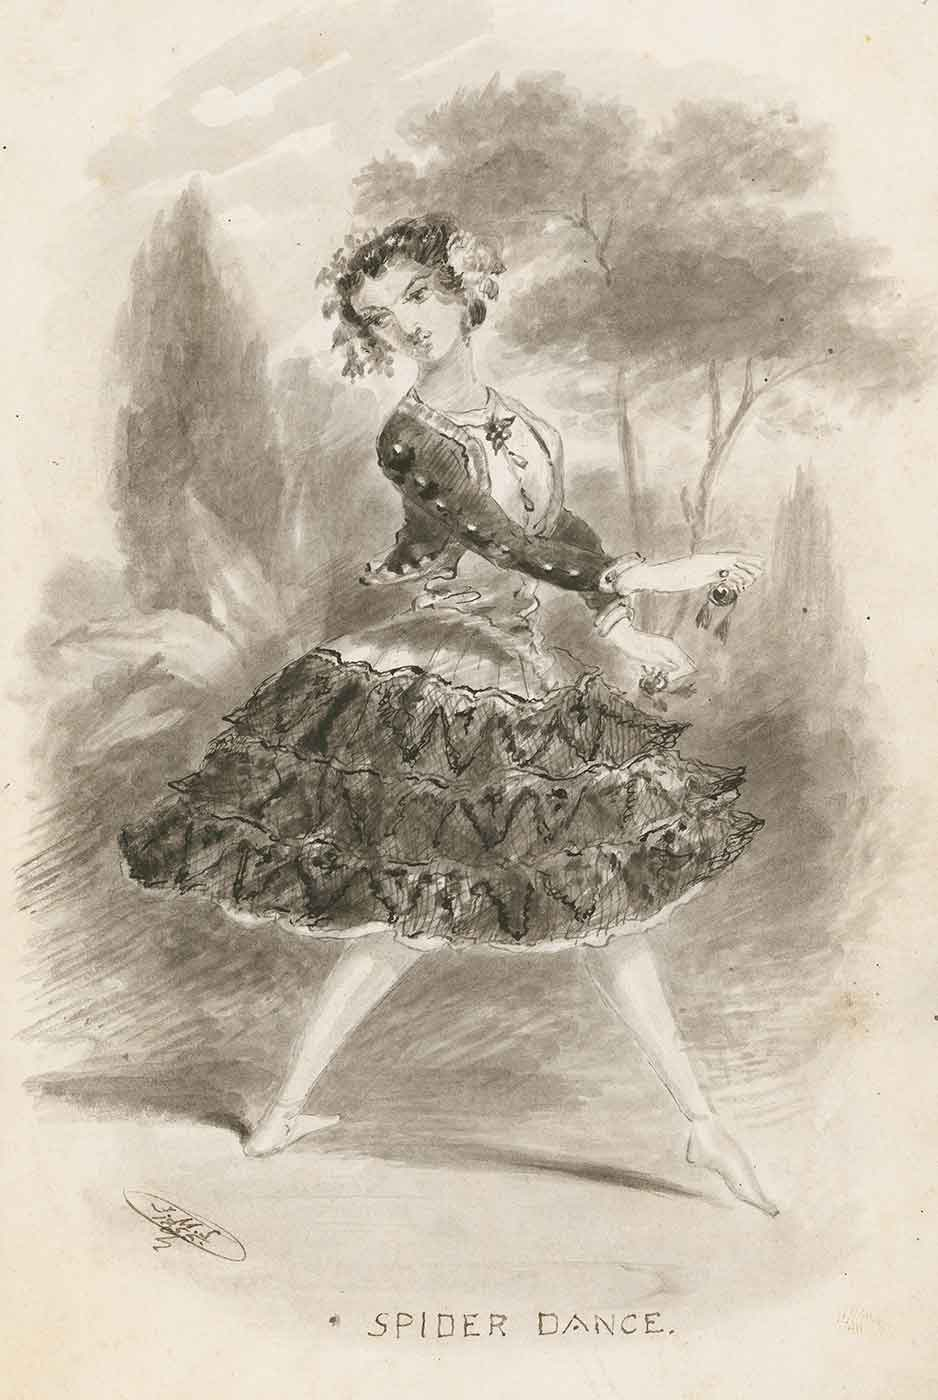 Drawing of a woman dancing with the text underneath: SPIDER DANCE. - click to view larger image